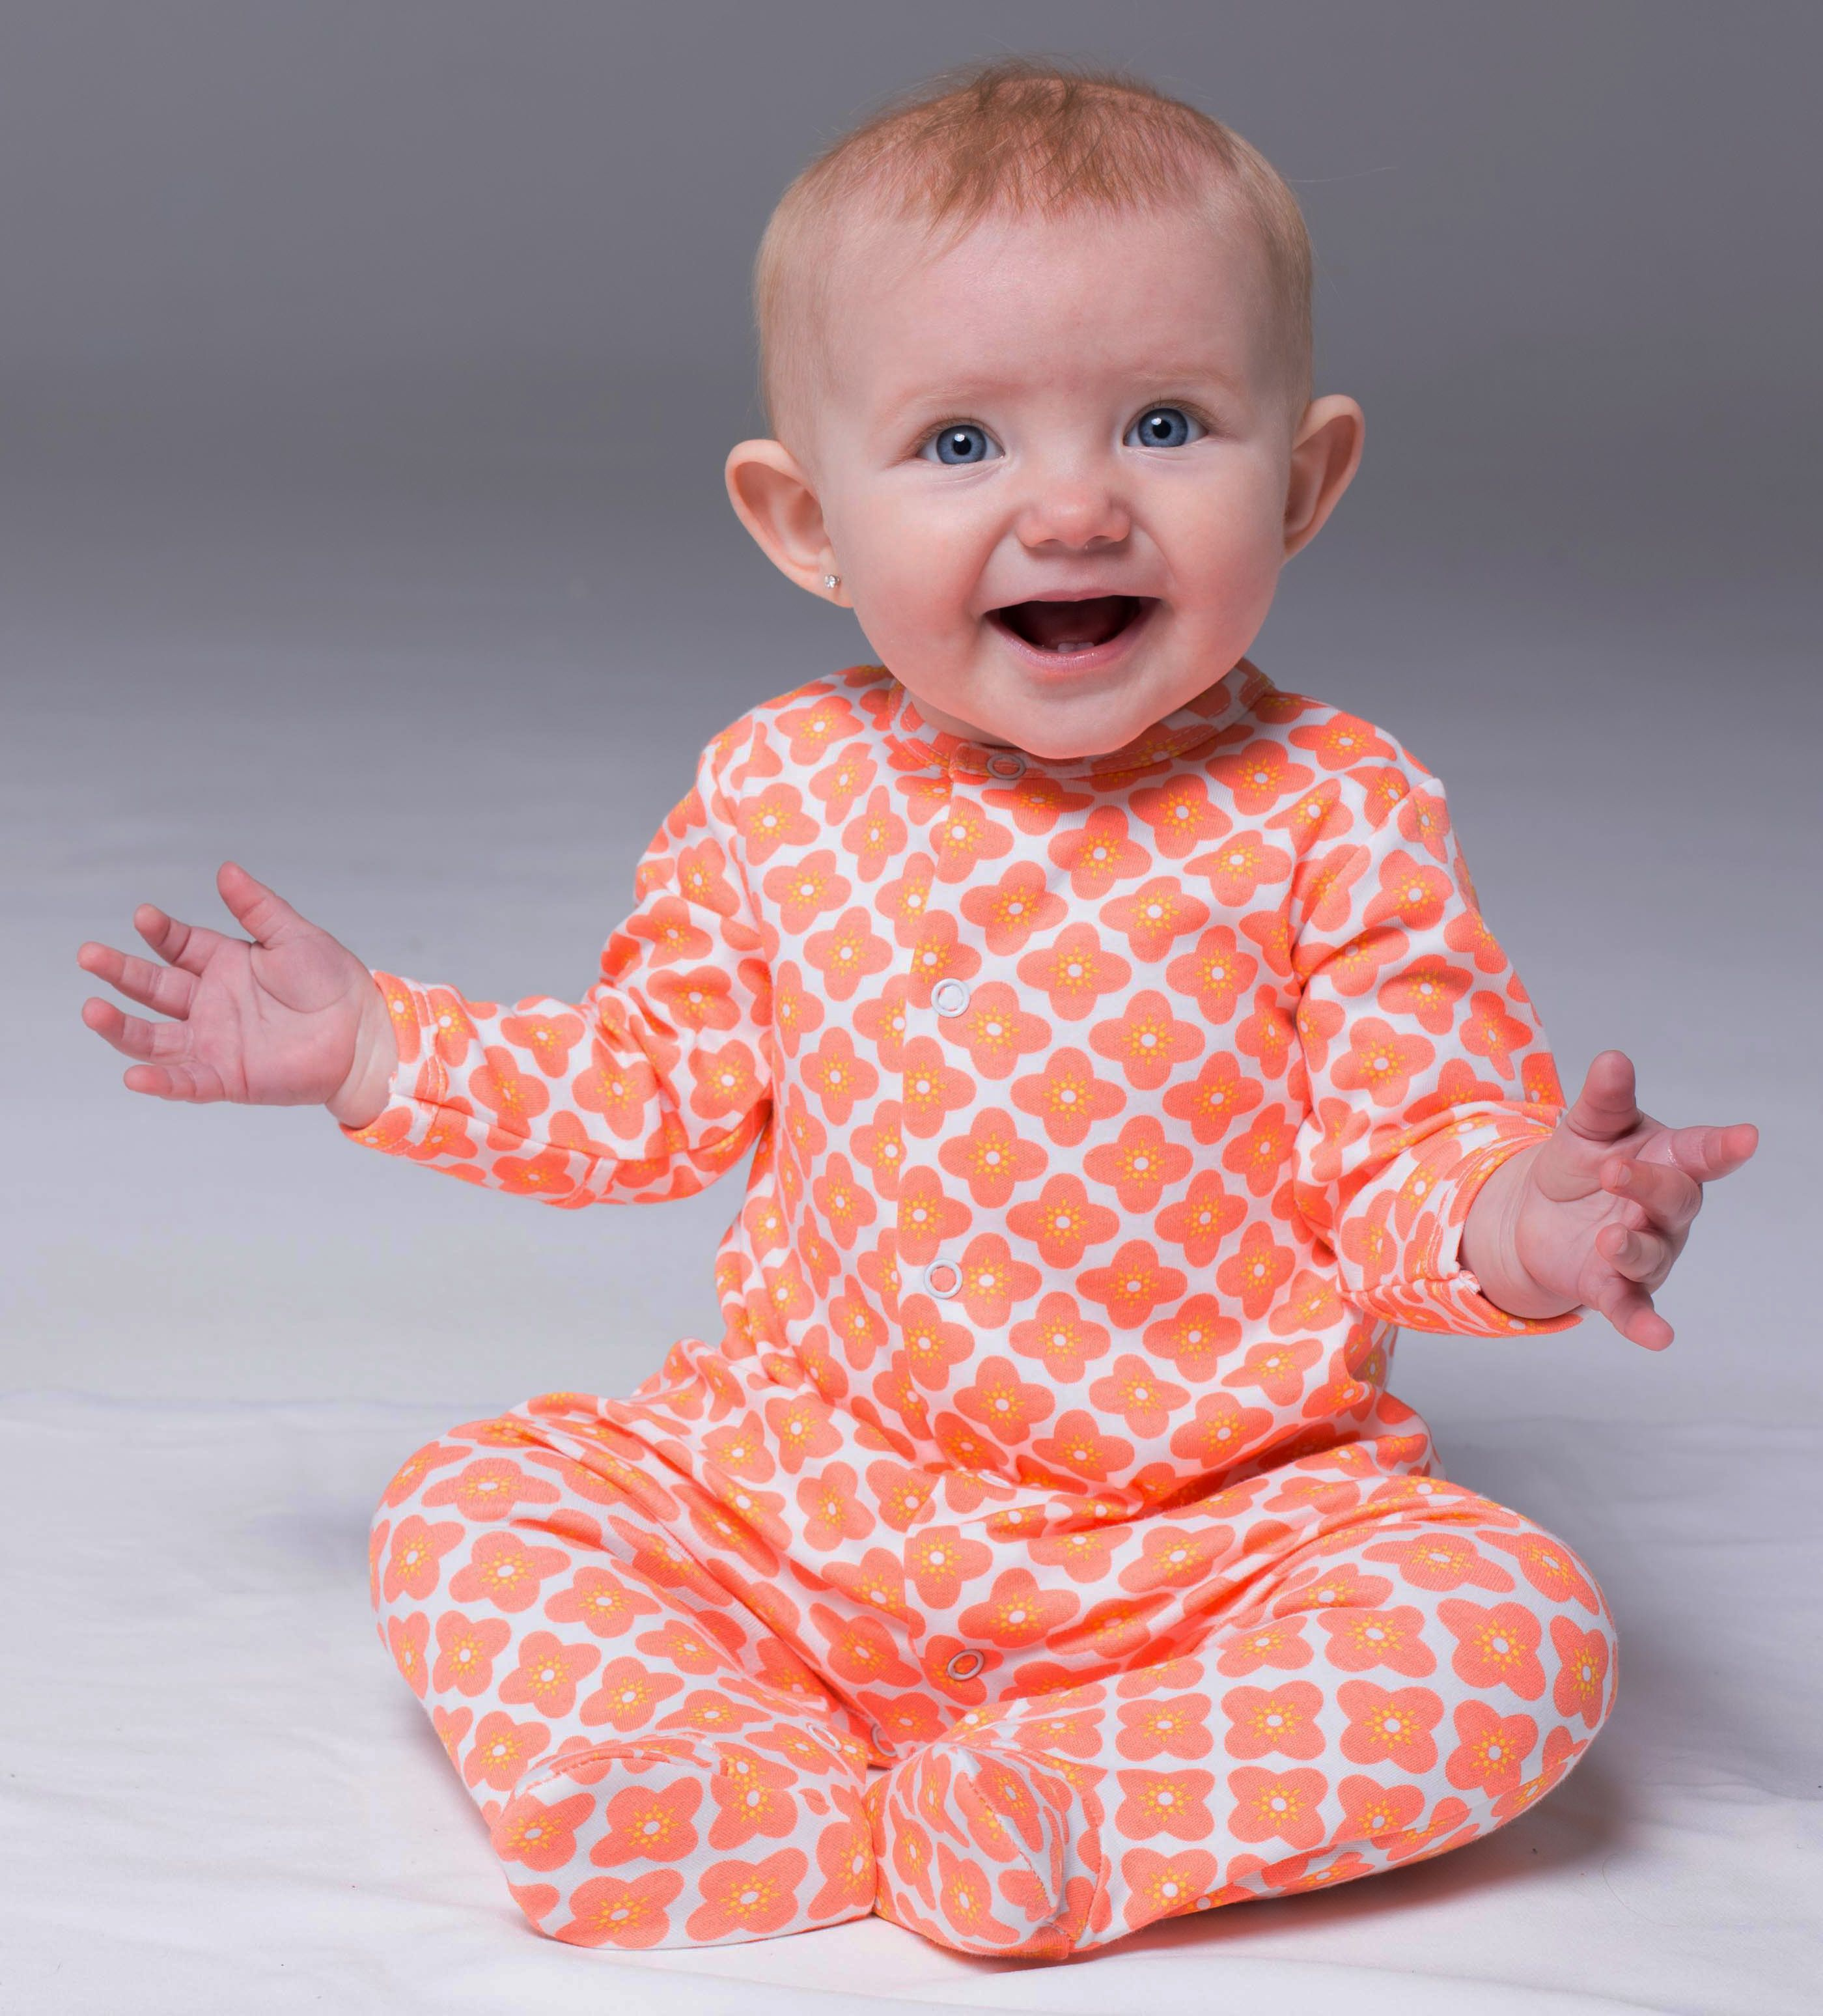 Lil Trunks baby fashion | Wee Style | Pinterest